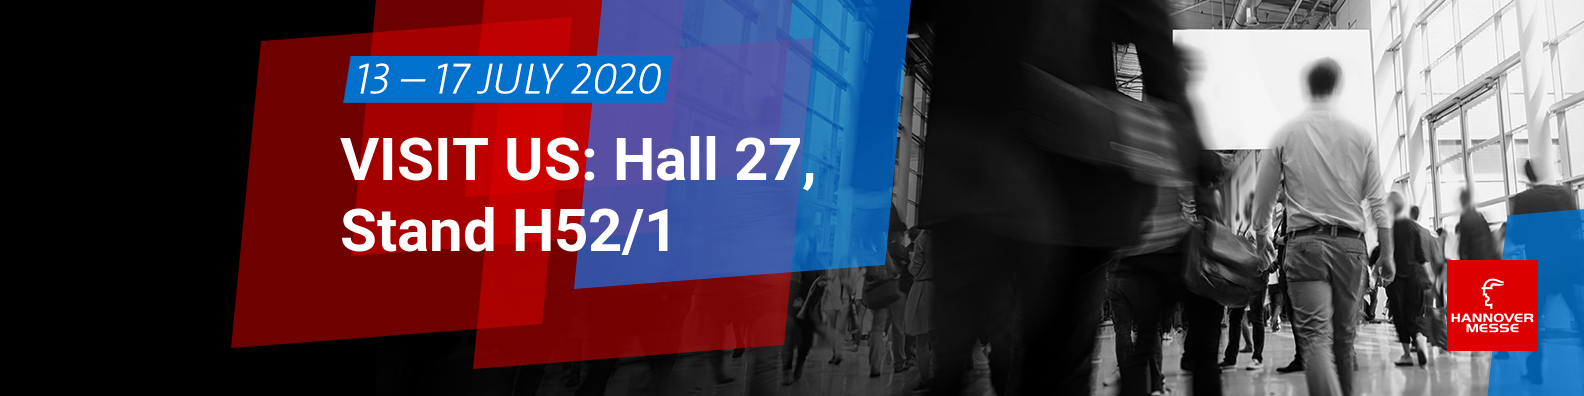 Hannover 2020